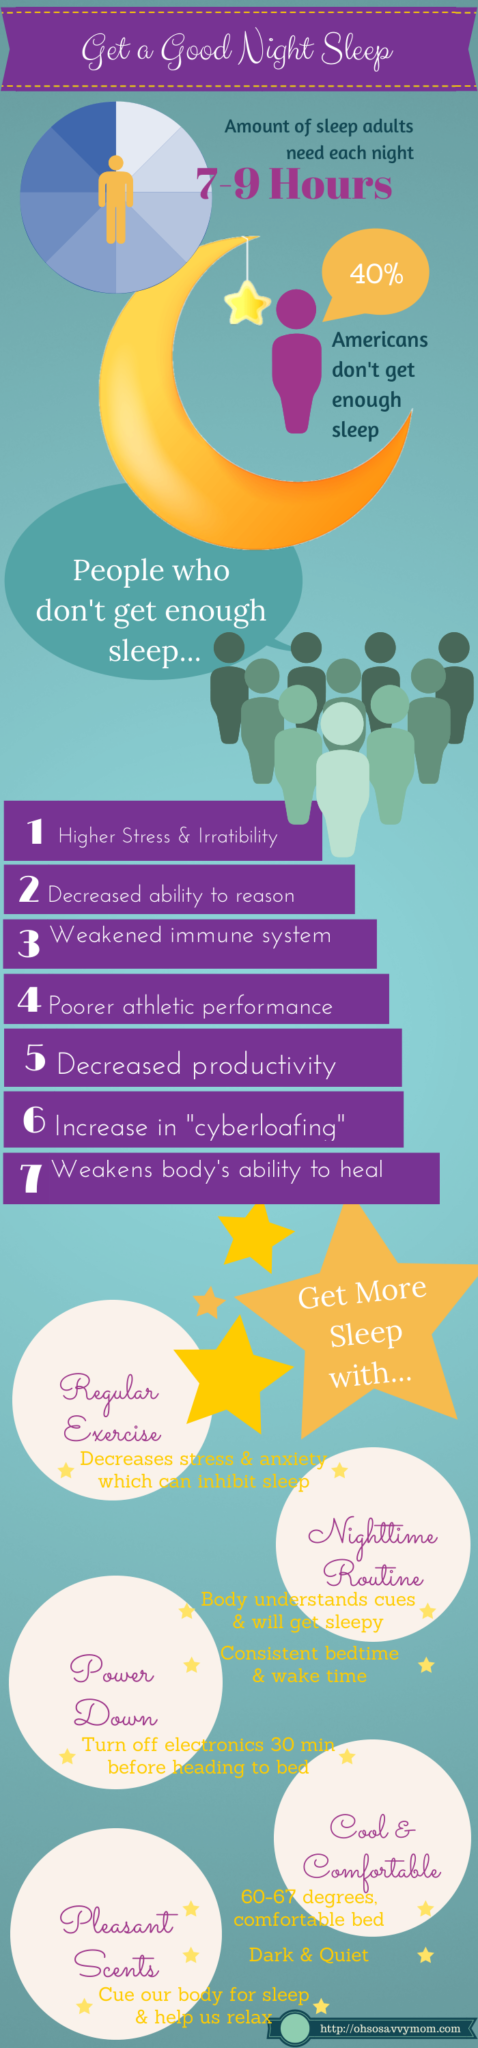 How to get good sleep and what happens when you don't get enough sleep, Infographic